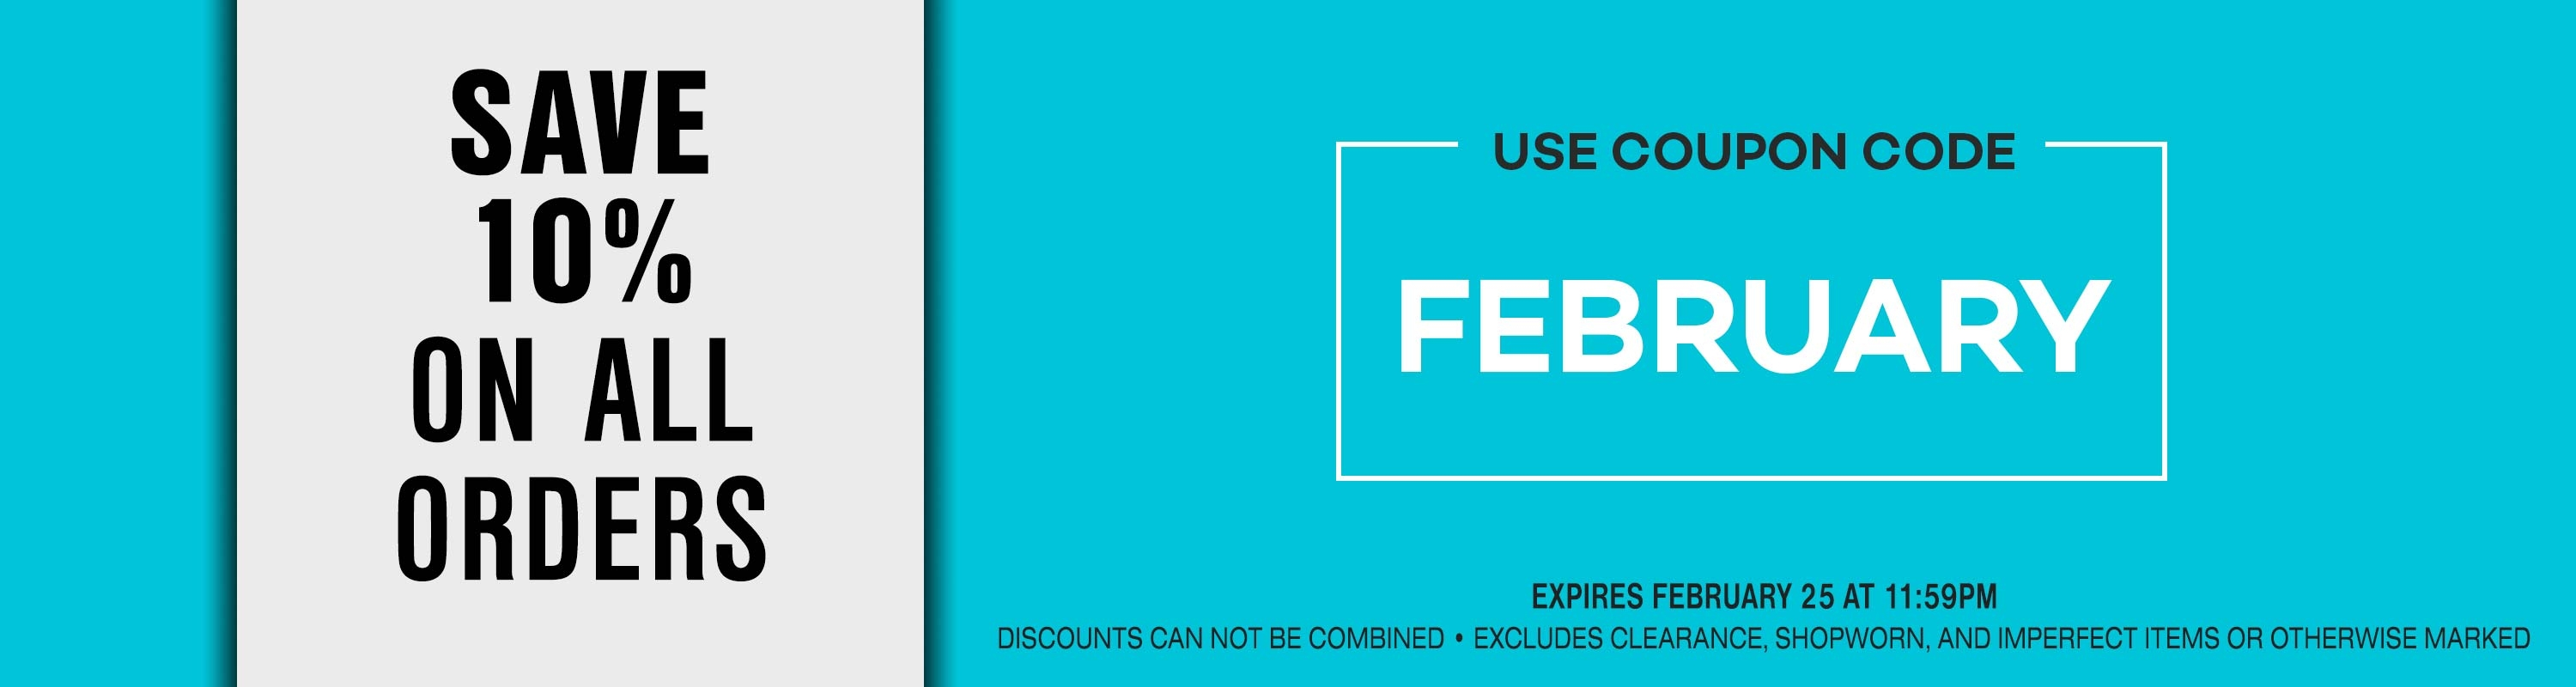 Save 10% Off of Your Next Order with the Coupon Code FEBRUARY